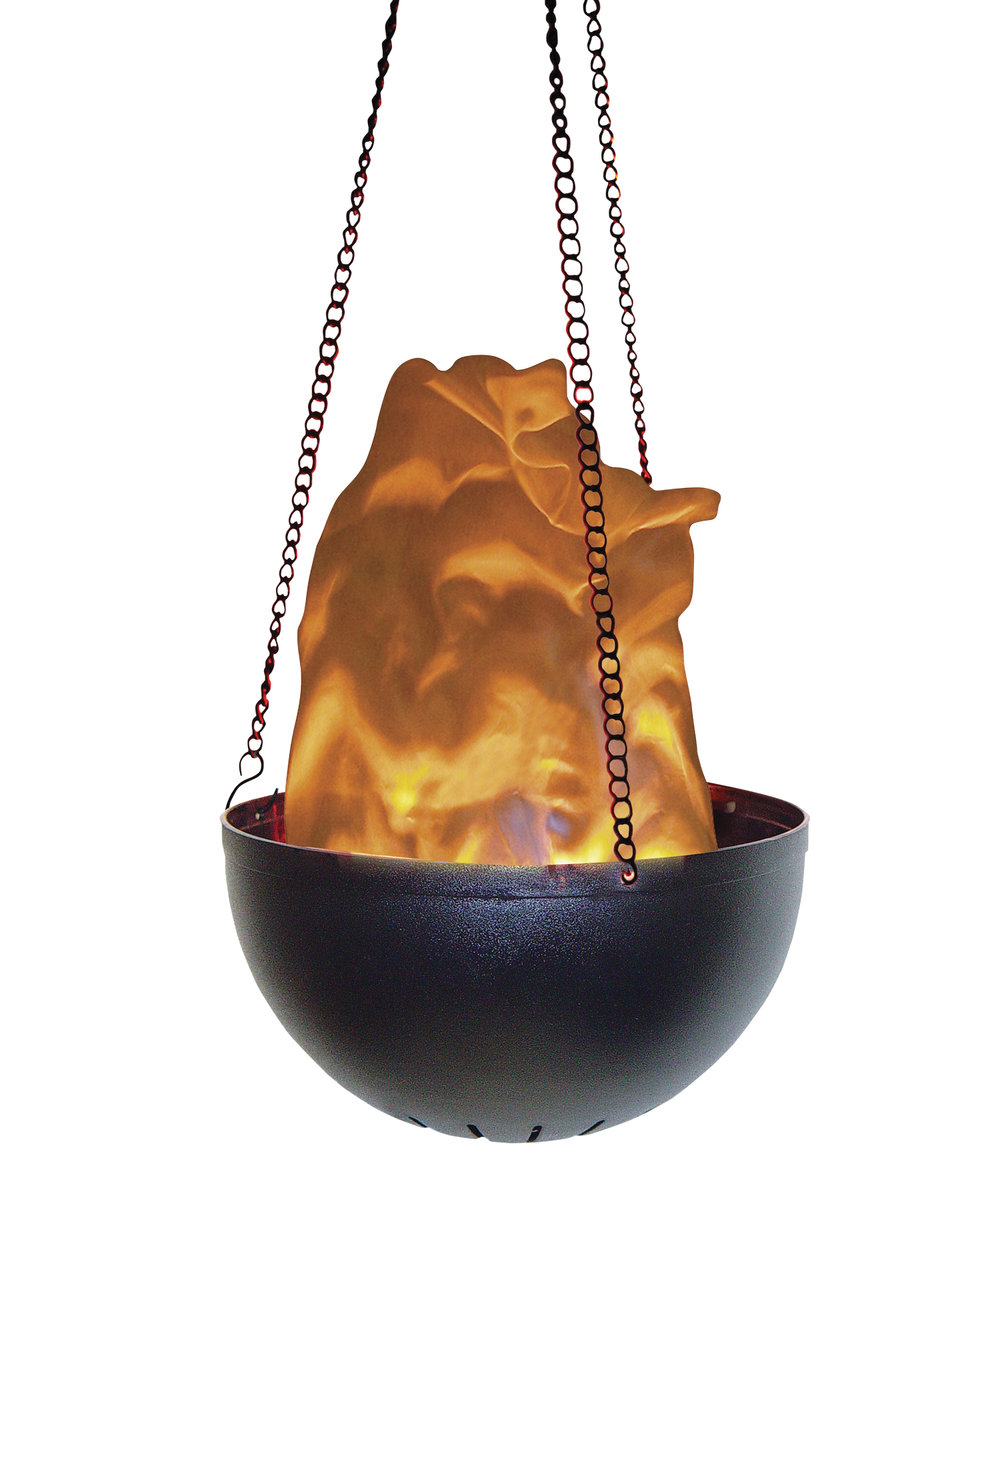 V0106C  HANGING MINI FLAME  -Hanging Flame Effect with 2Bulbs